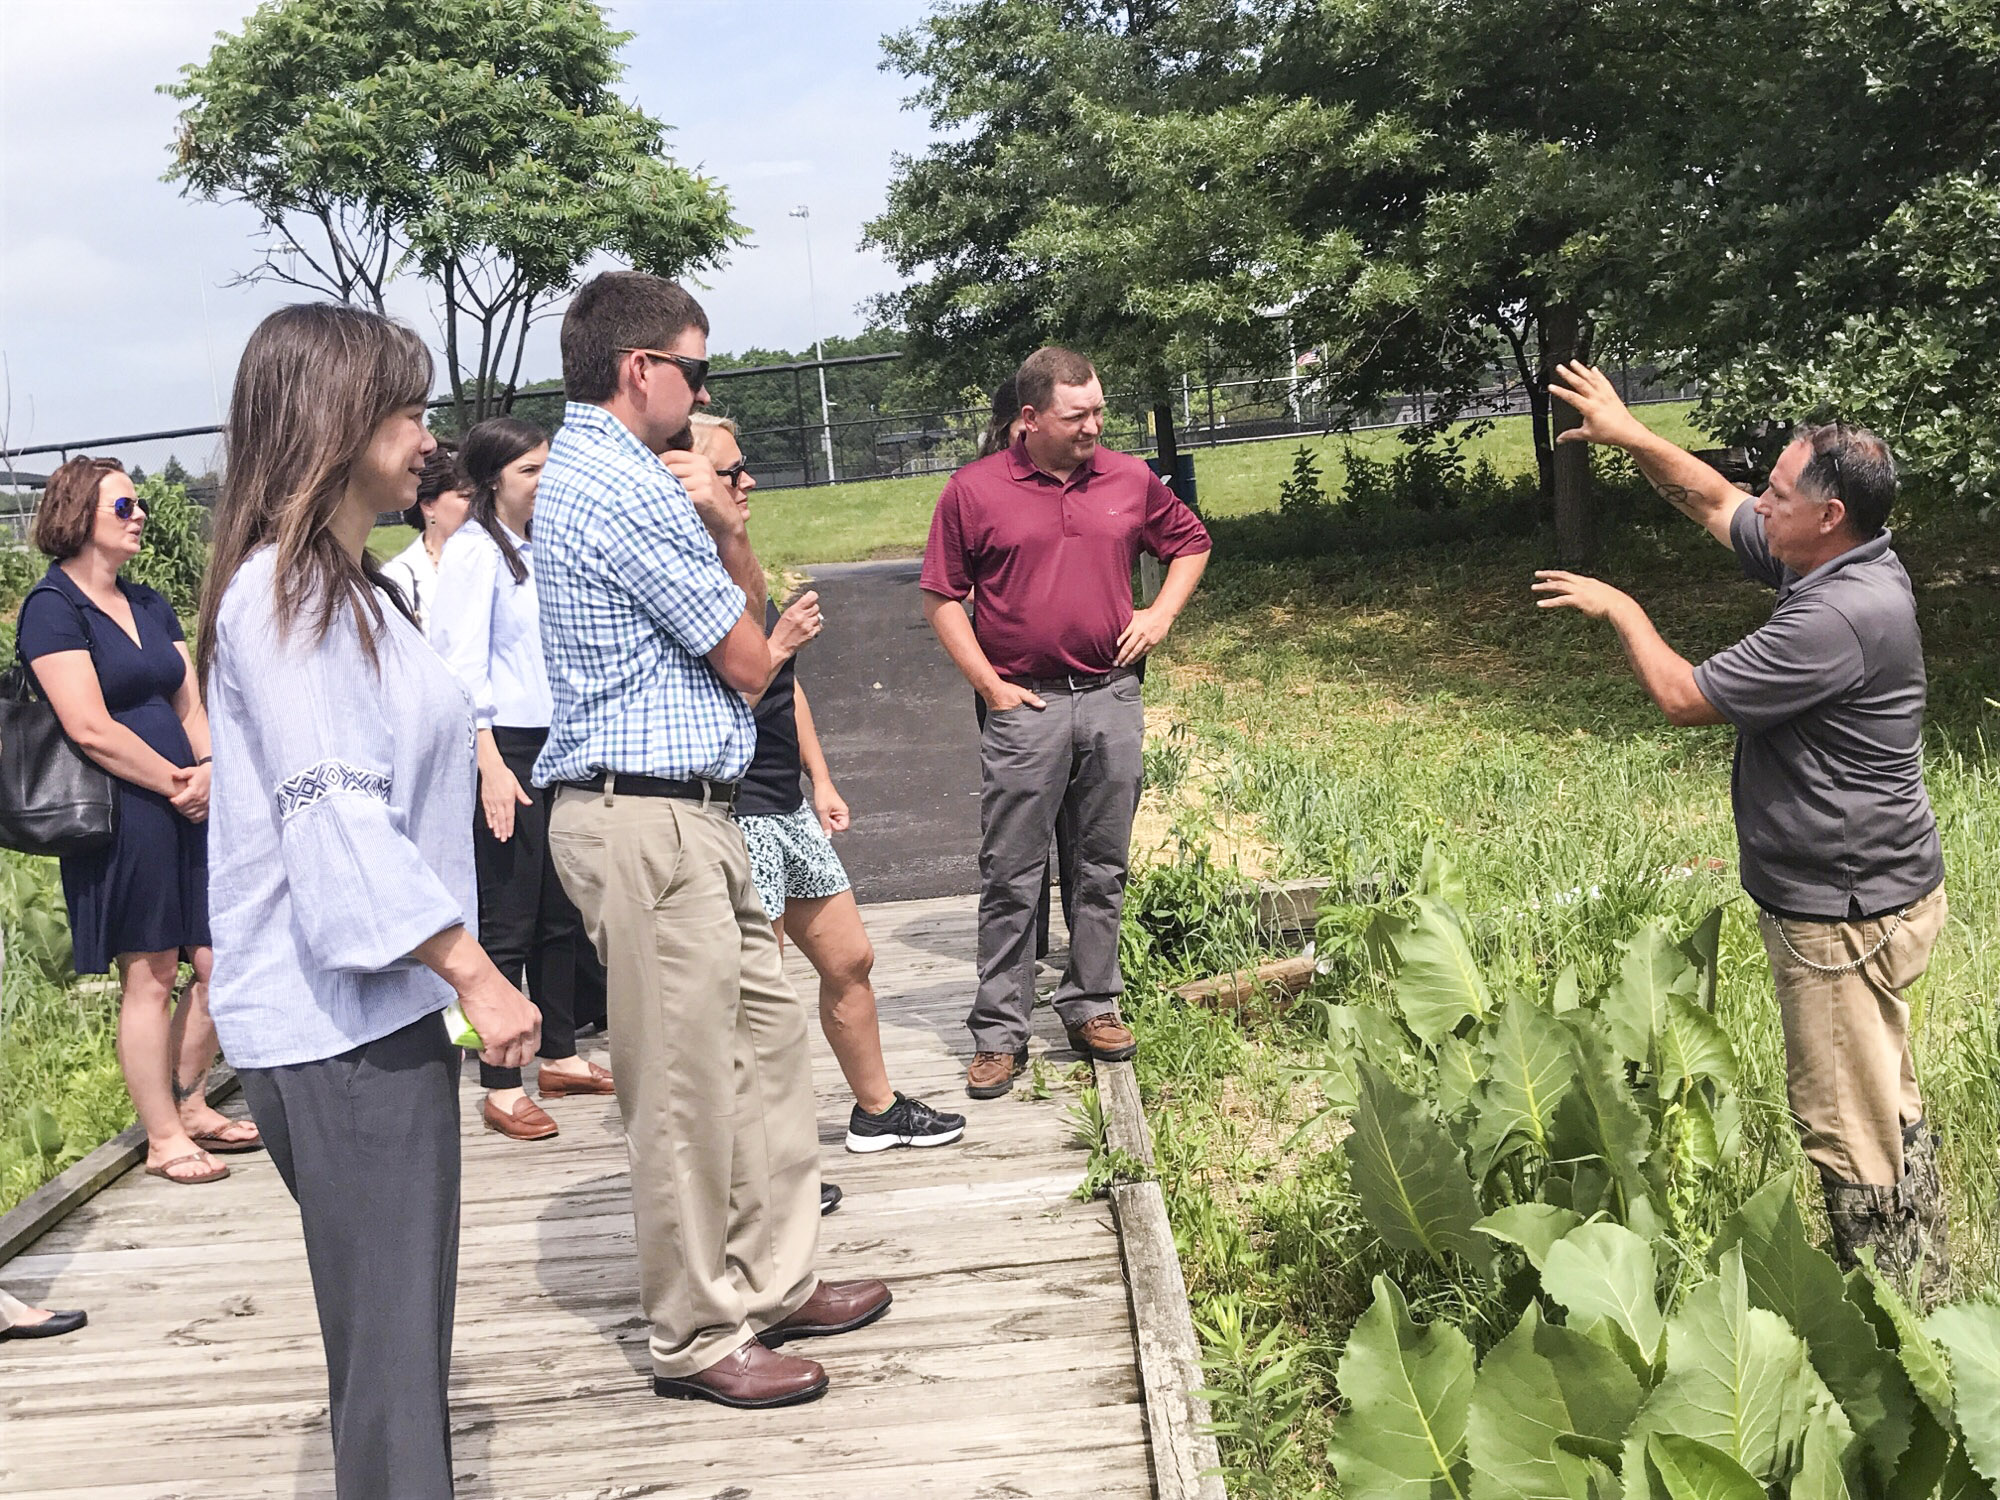 Carroll County Farm Bureau Tours Adopted Lawmaker's Suburban District